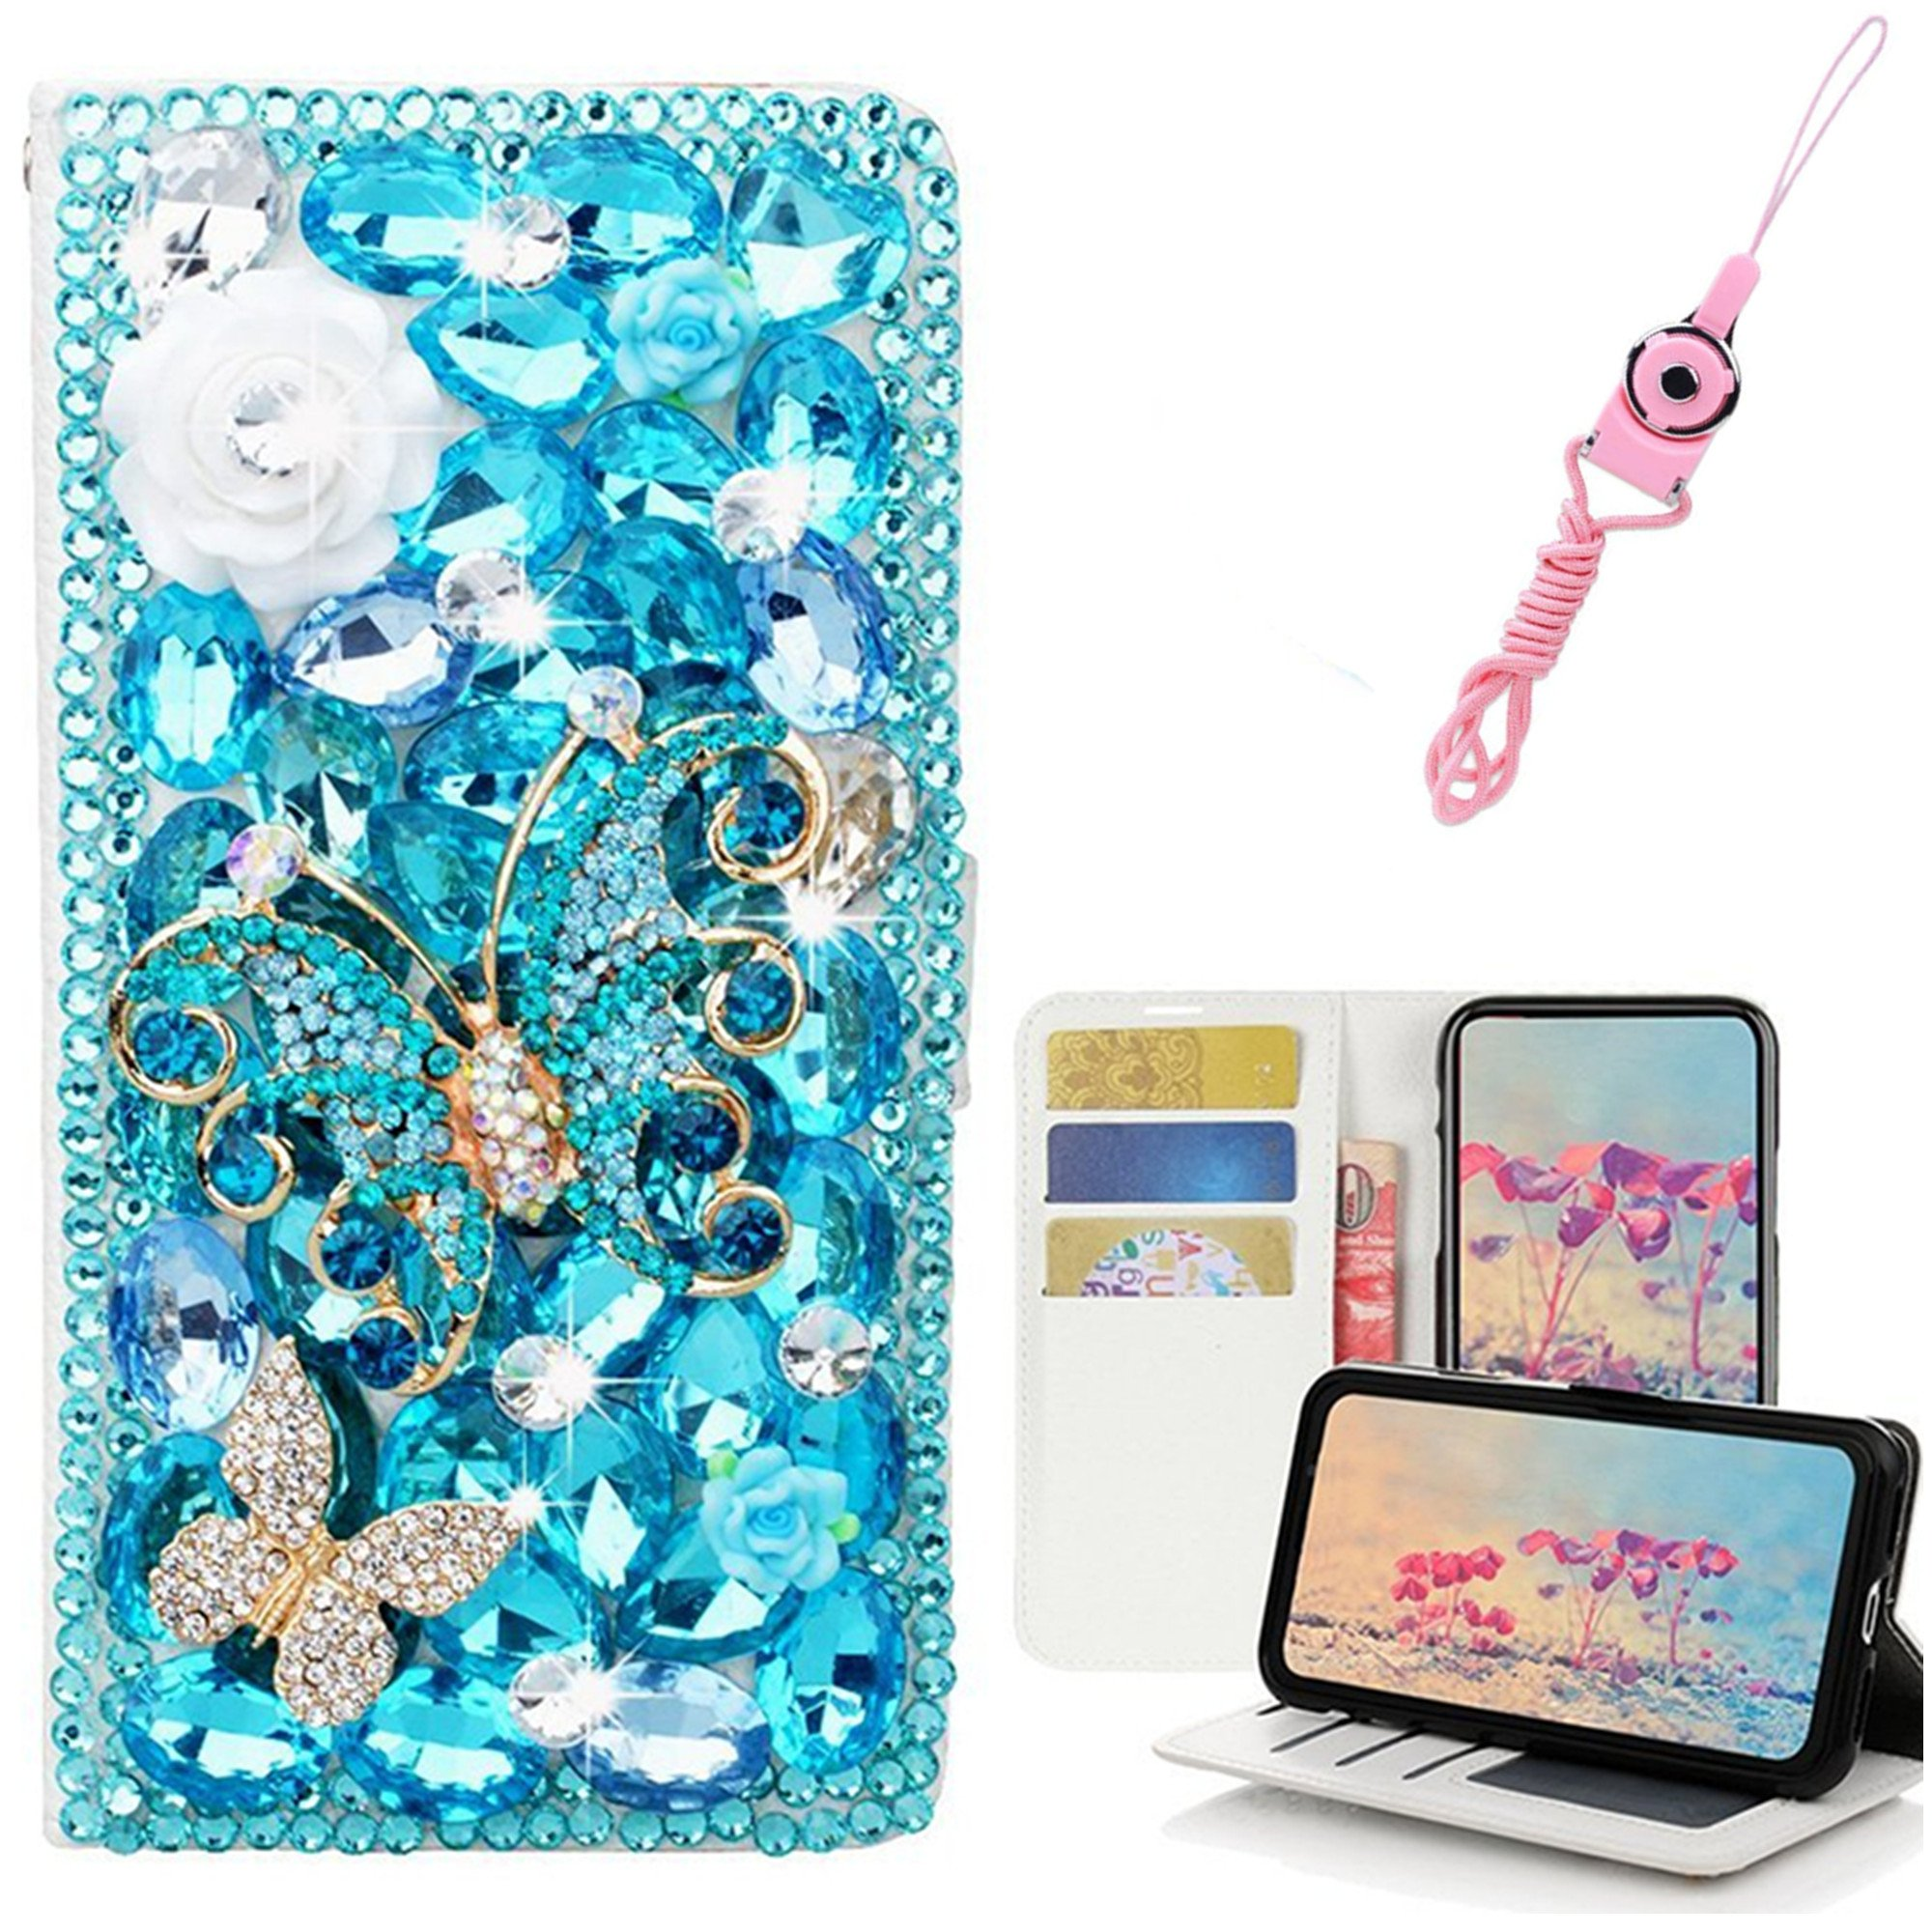 EVTECH LG Stylo 3 Case with Lanyard Neck Strap, [Stand Feature] Butterfly Crystal Wallet Case Premium [Bling Luxury] PU Leather Flip Cover [Card Slots] For LG Stylo 3 Plus